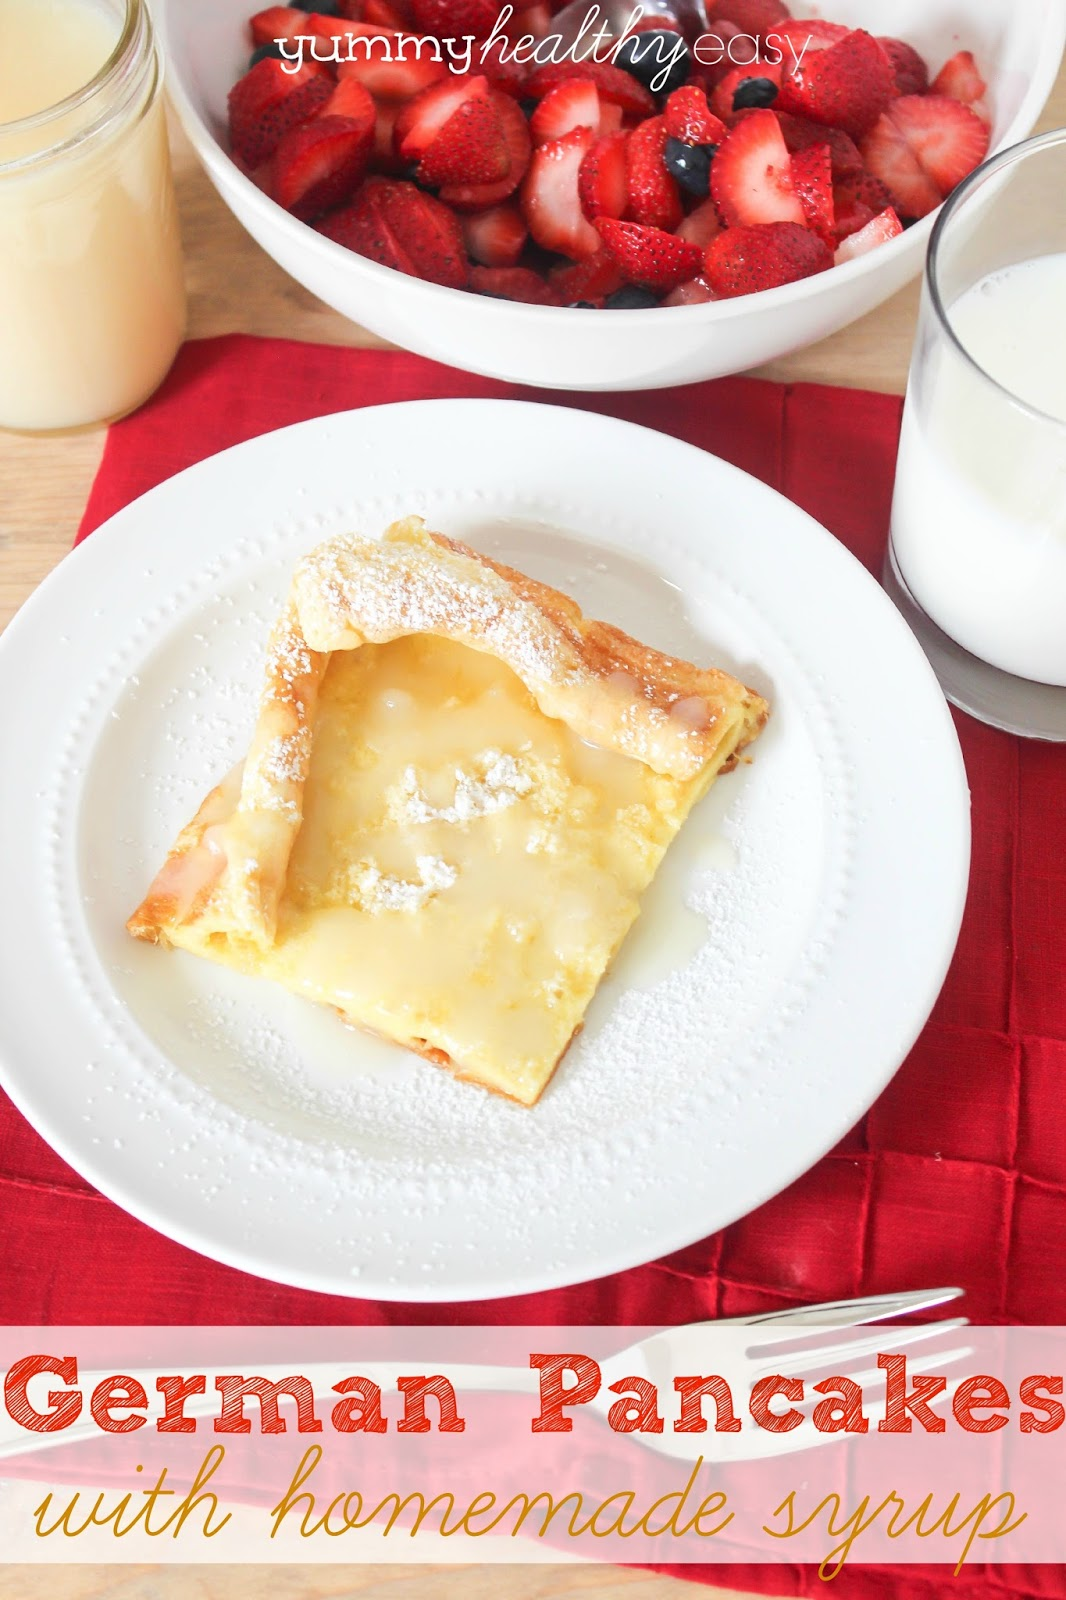 German Pancakes with Homemade Syrup - Yummy Healthy Easy